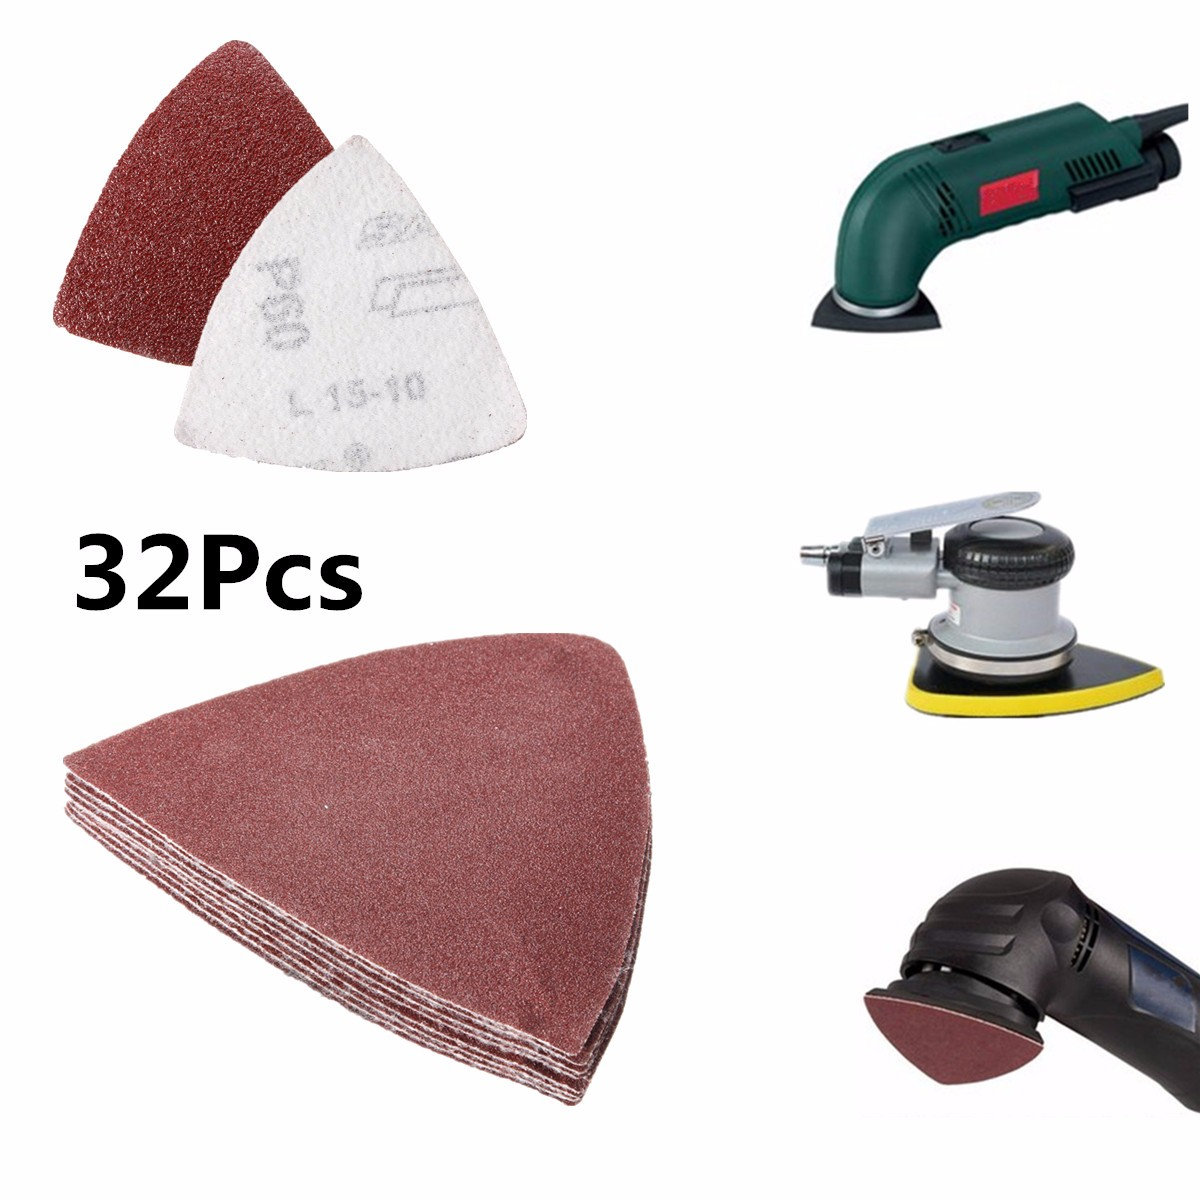 Active 32pcs/set Triangular Sand Paper Sandpaper For Oscillating Tool 3-1/8 Size Universal Tools